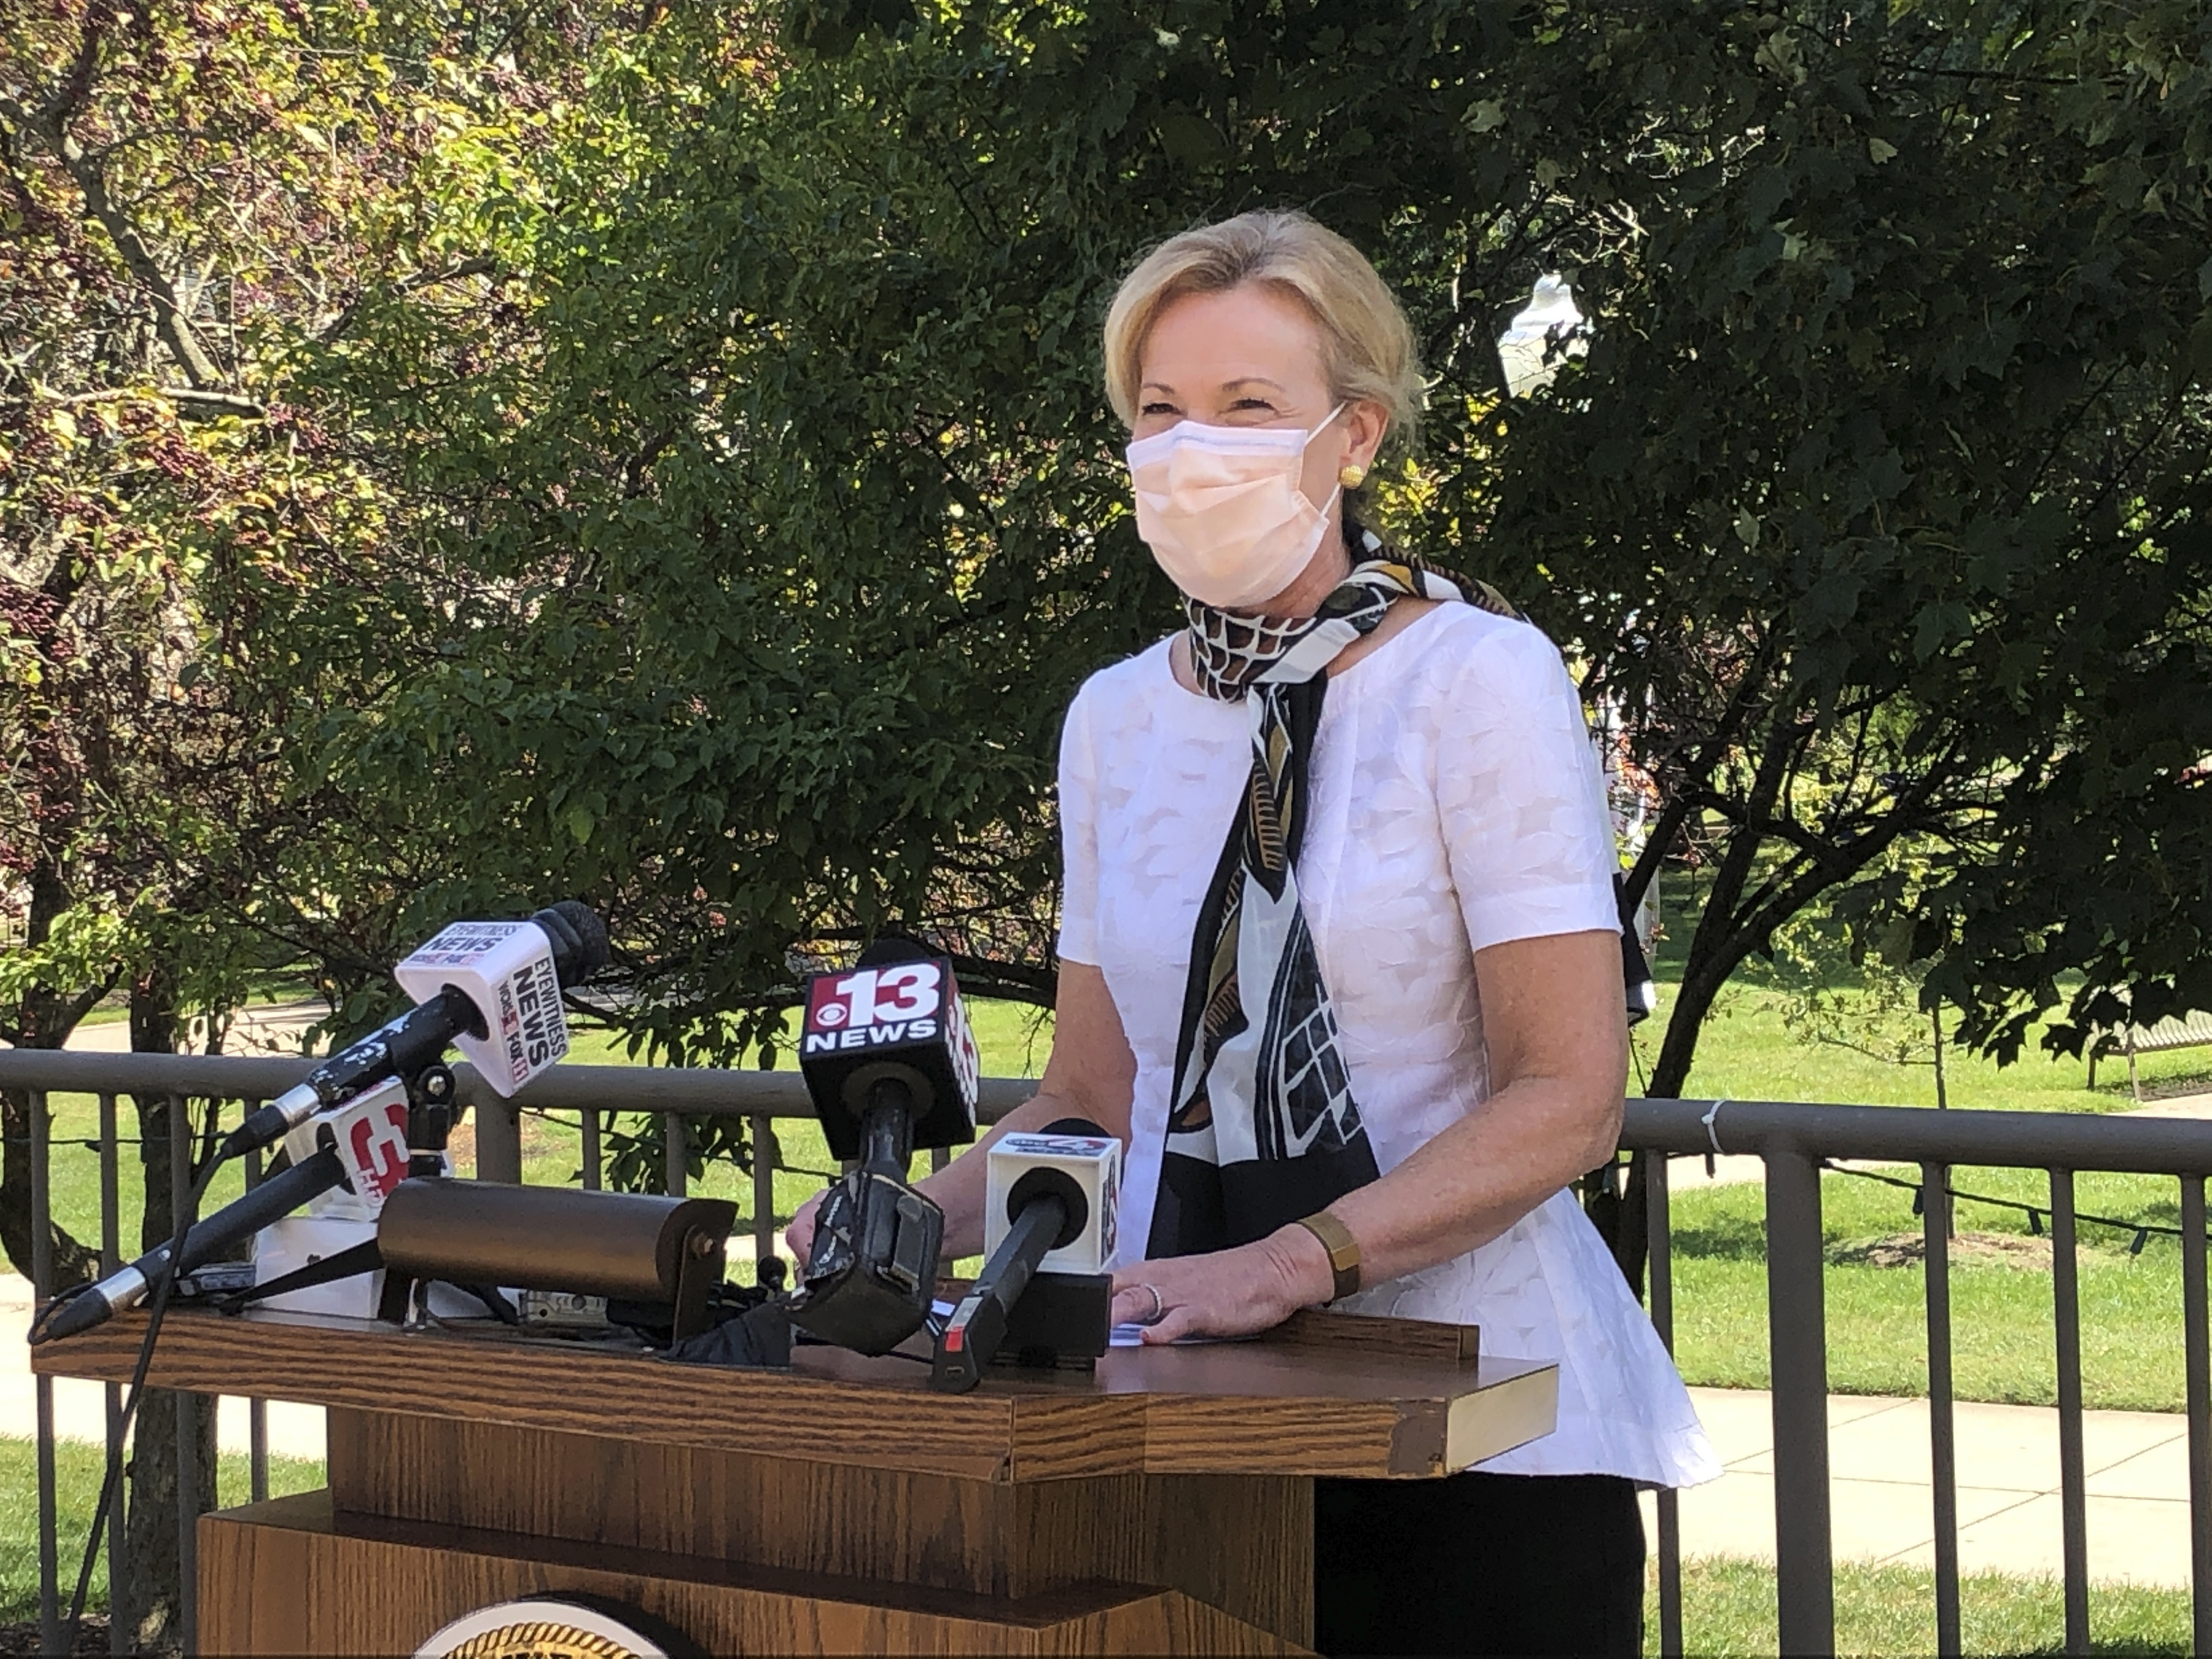 Dr. Deborah Birx, President Donald Trump's top coronavirus adviser, speaks at a news conference at the state Capitol Complex, Wednesday, Aug. 19, 2020, in Charleston, W.Va.